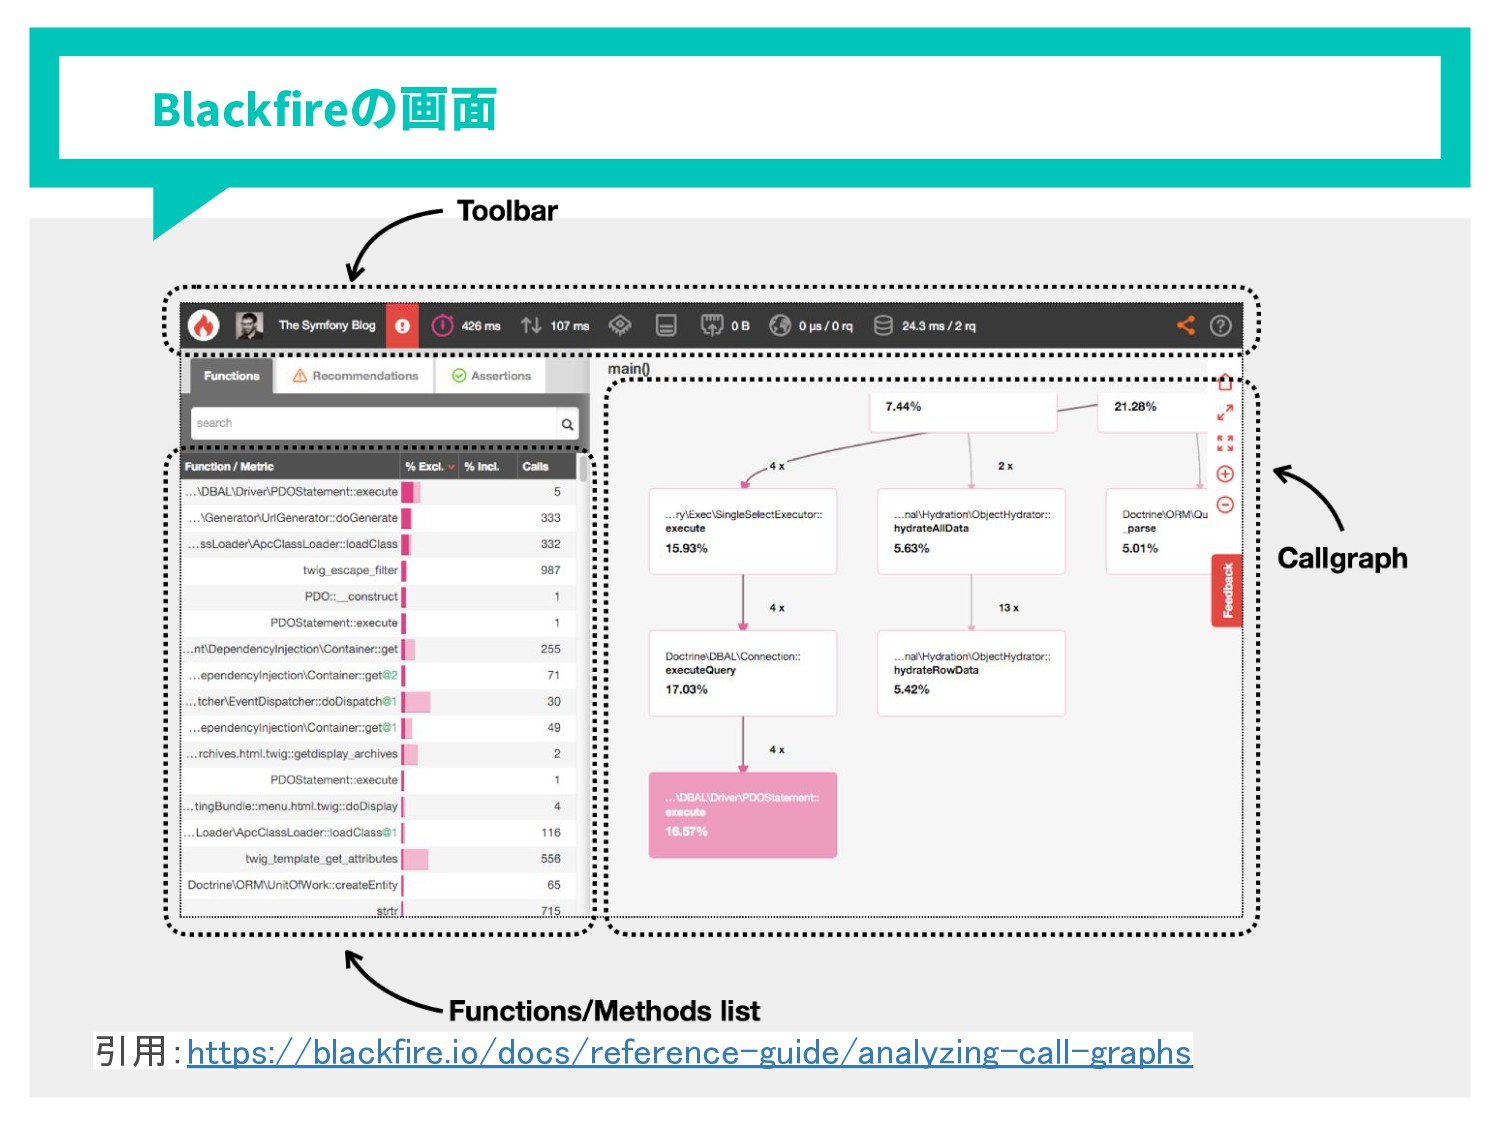 Blackfire 画面 引用:https://blackfire.io/docs/refer...